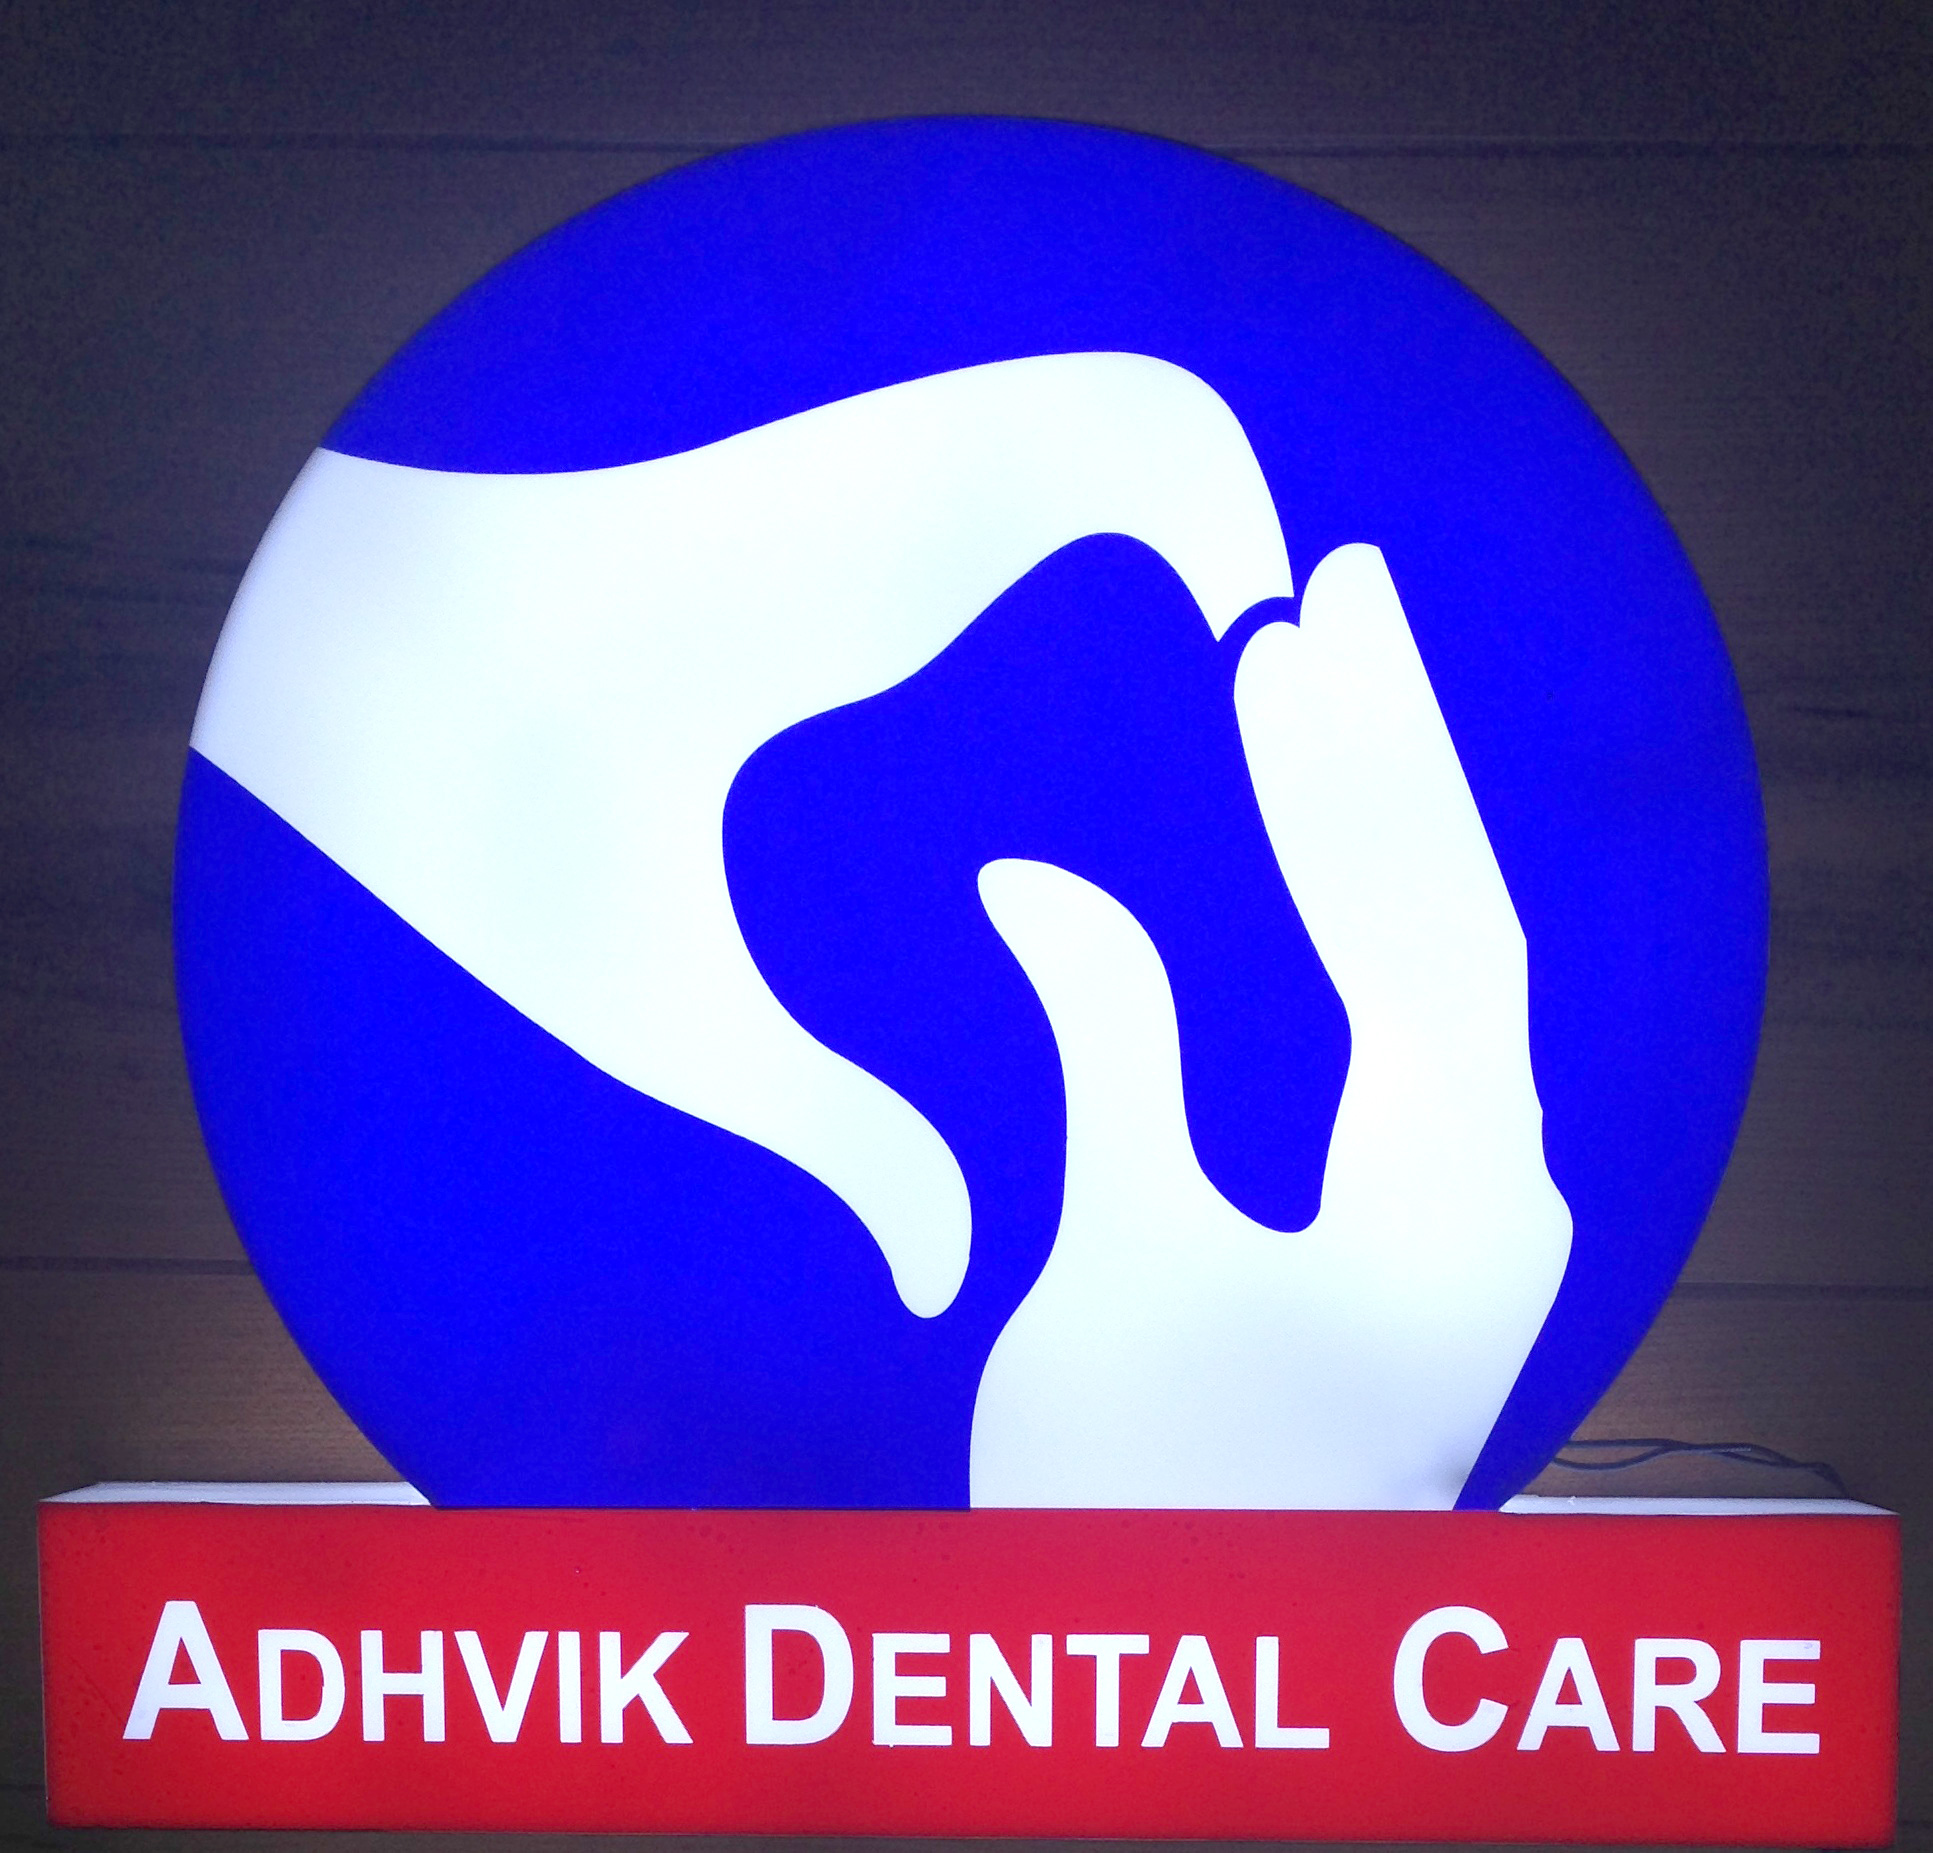 Adhvik Multispeciality Dental and Laser Care